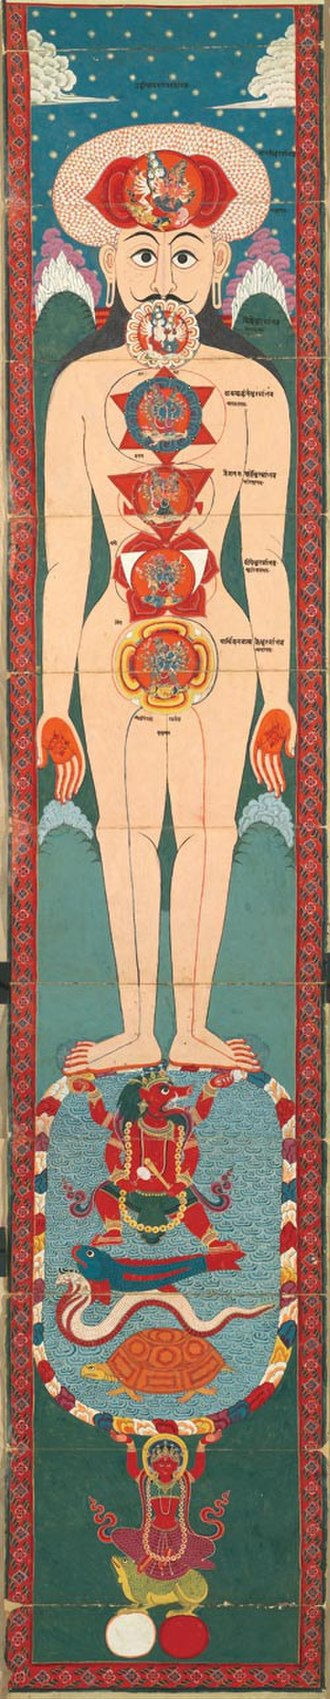 Subtle body - The Subtle body and the cosmic man, Nepal 1600s